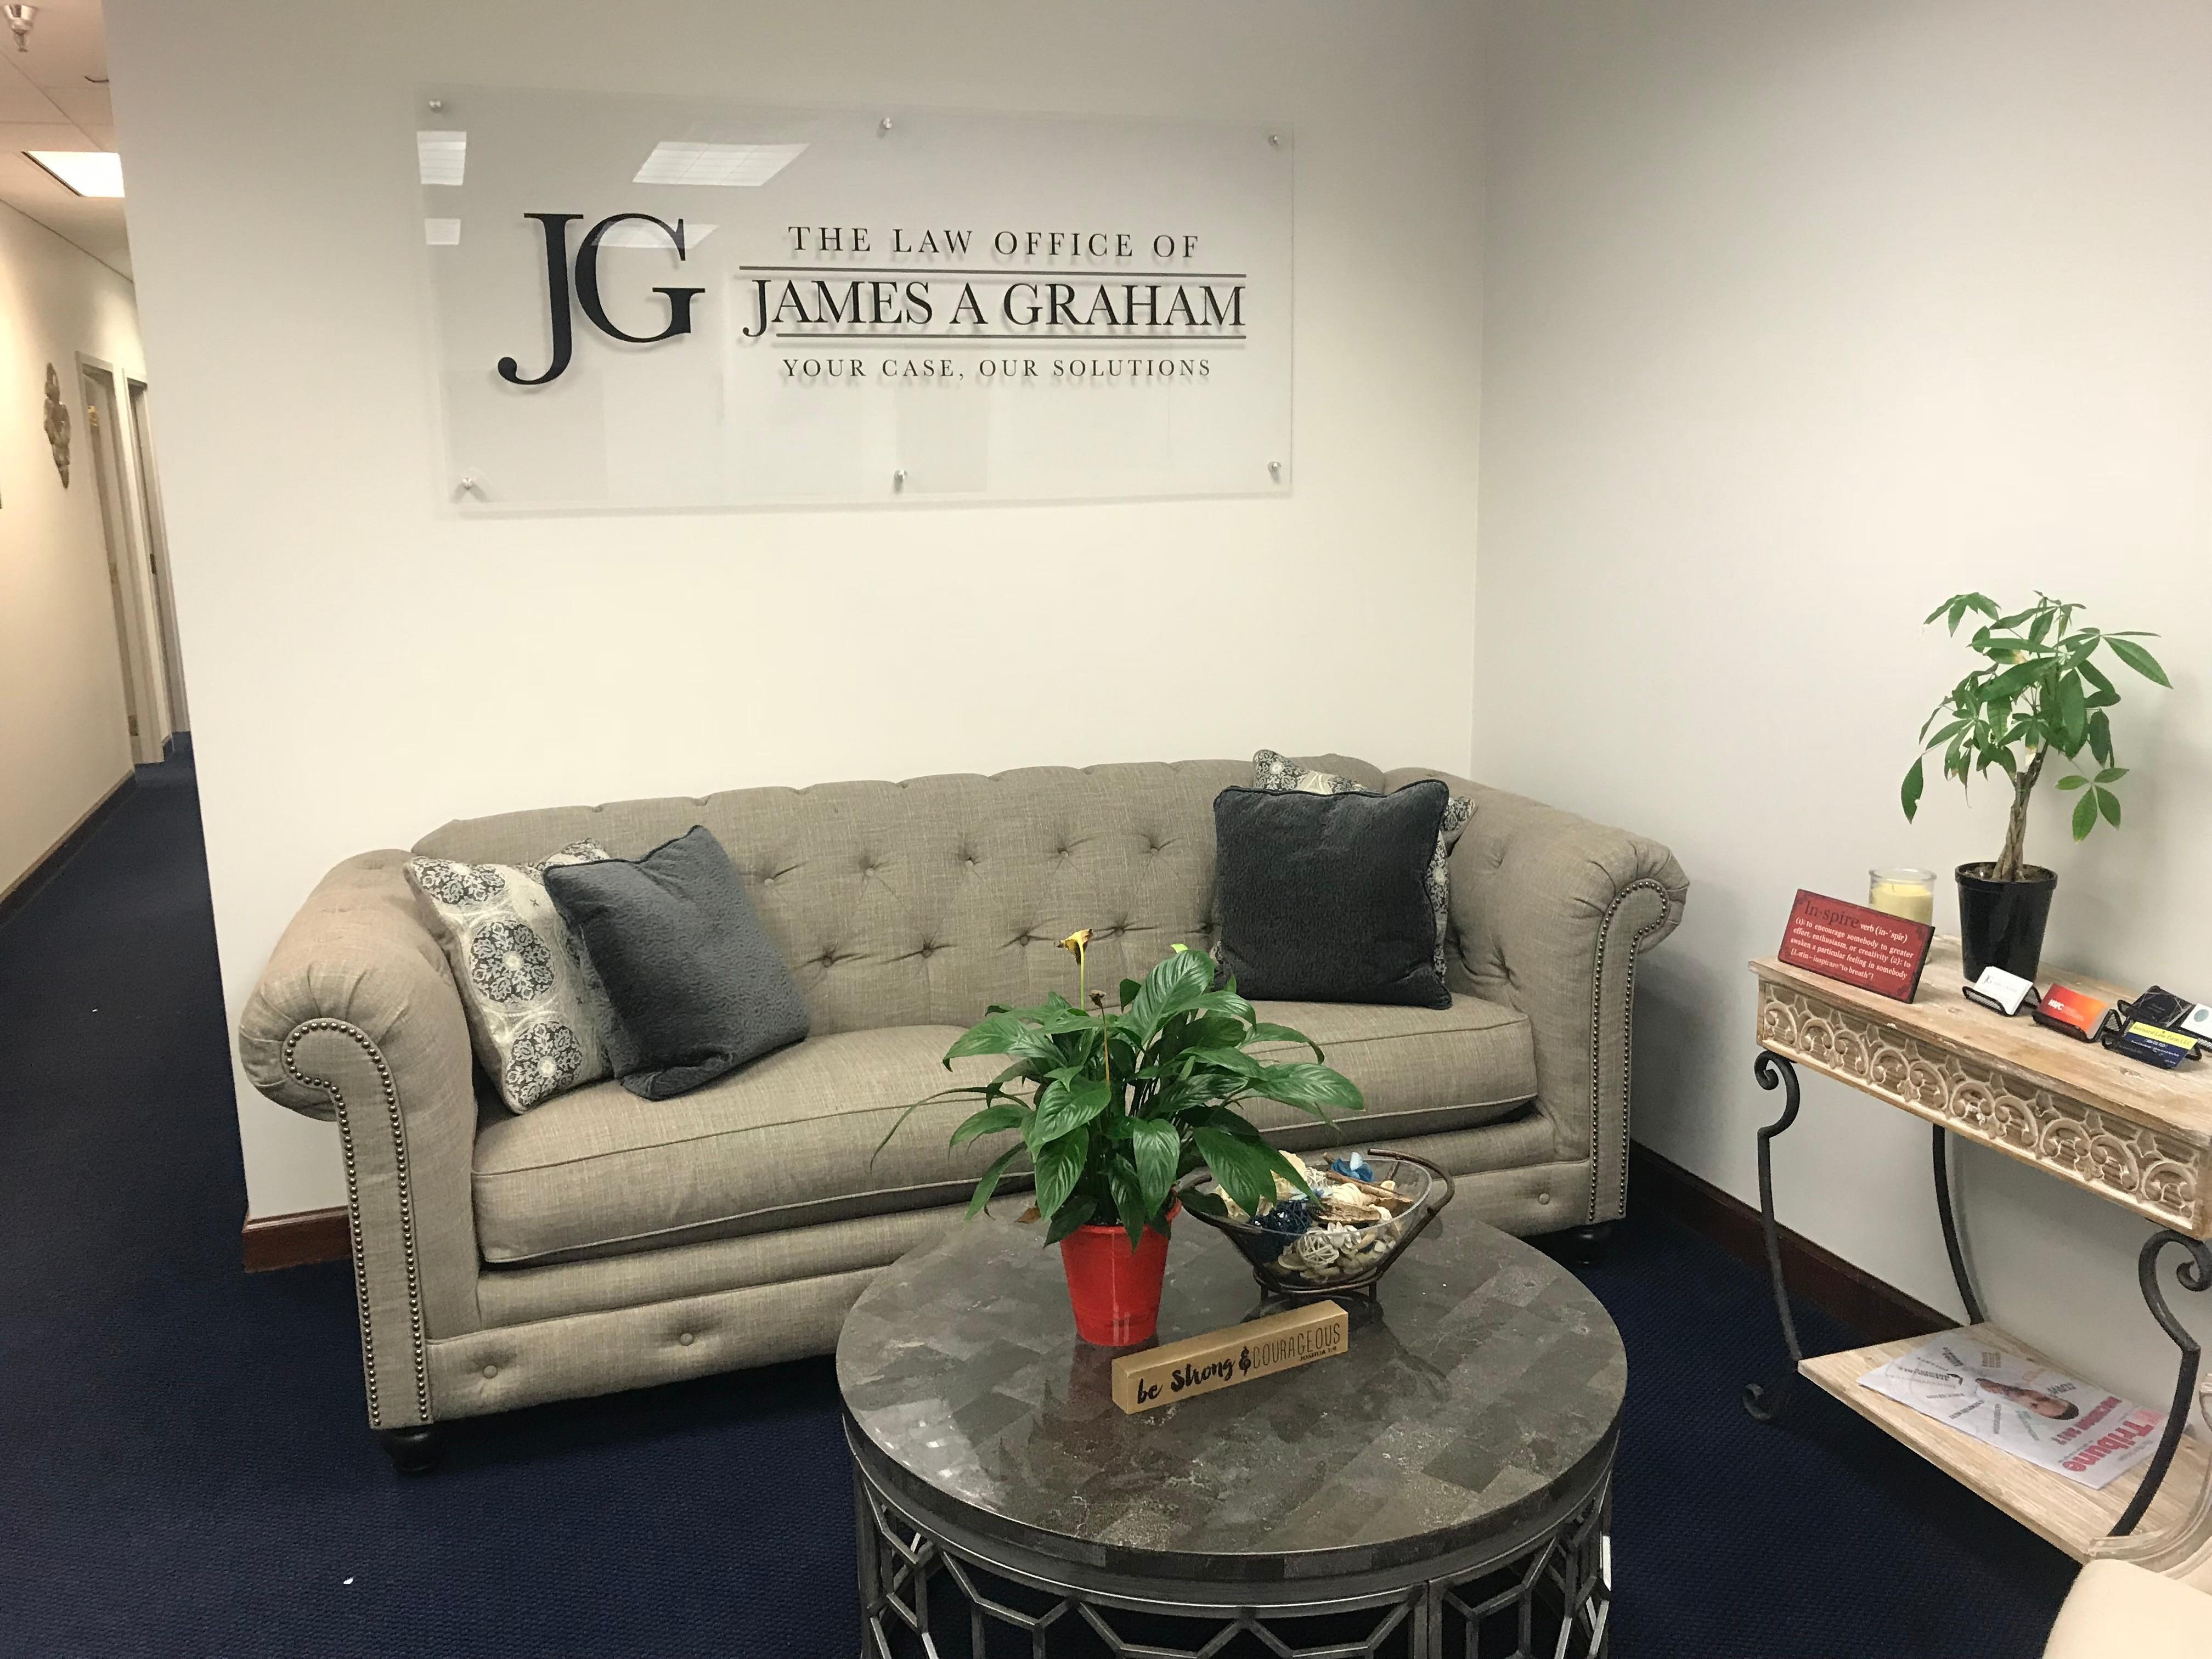 The Law Office of James A. Graham LLC image 2